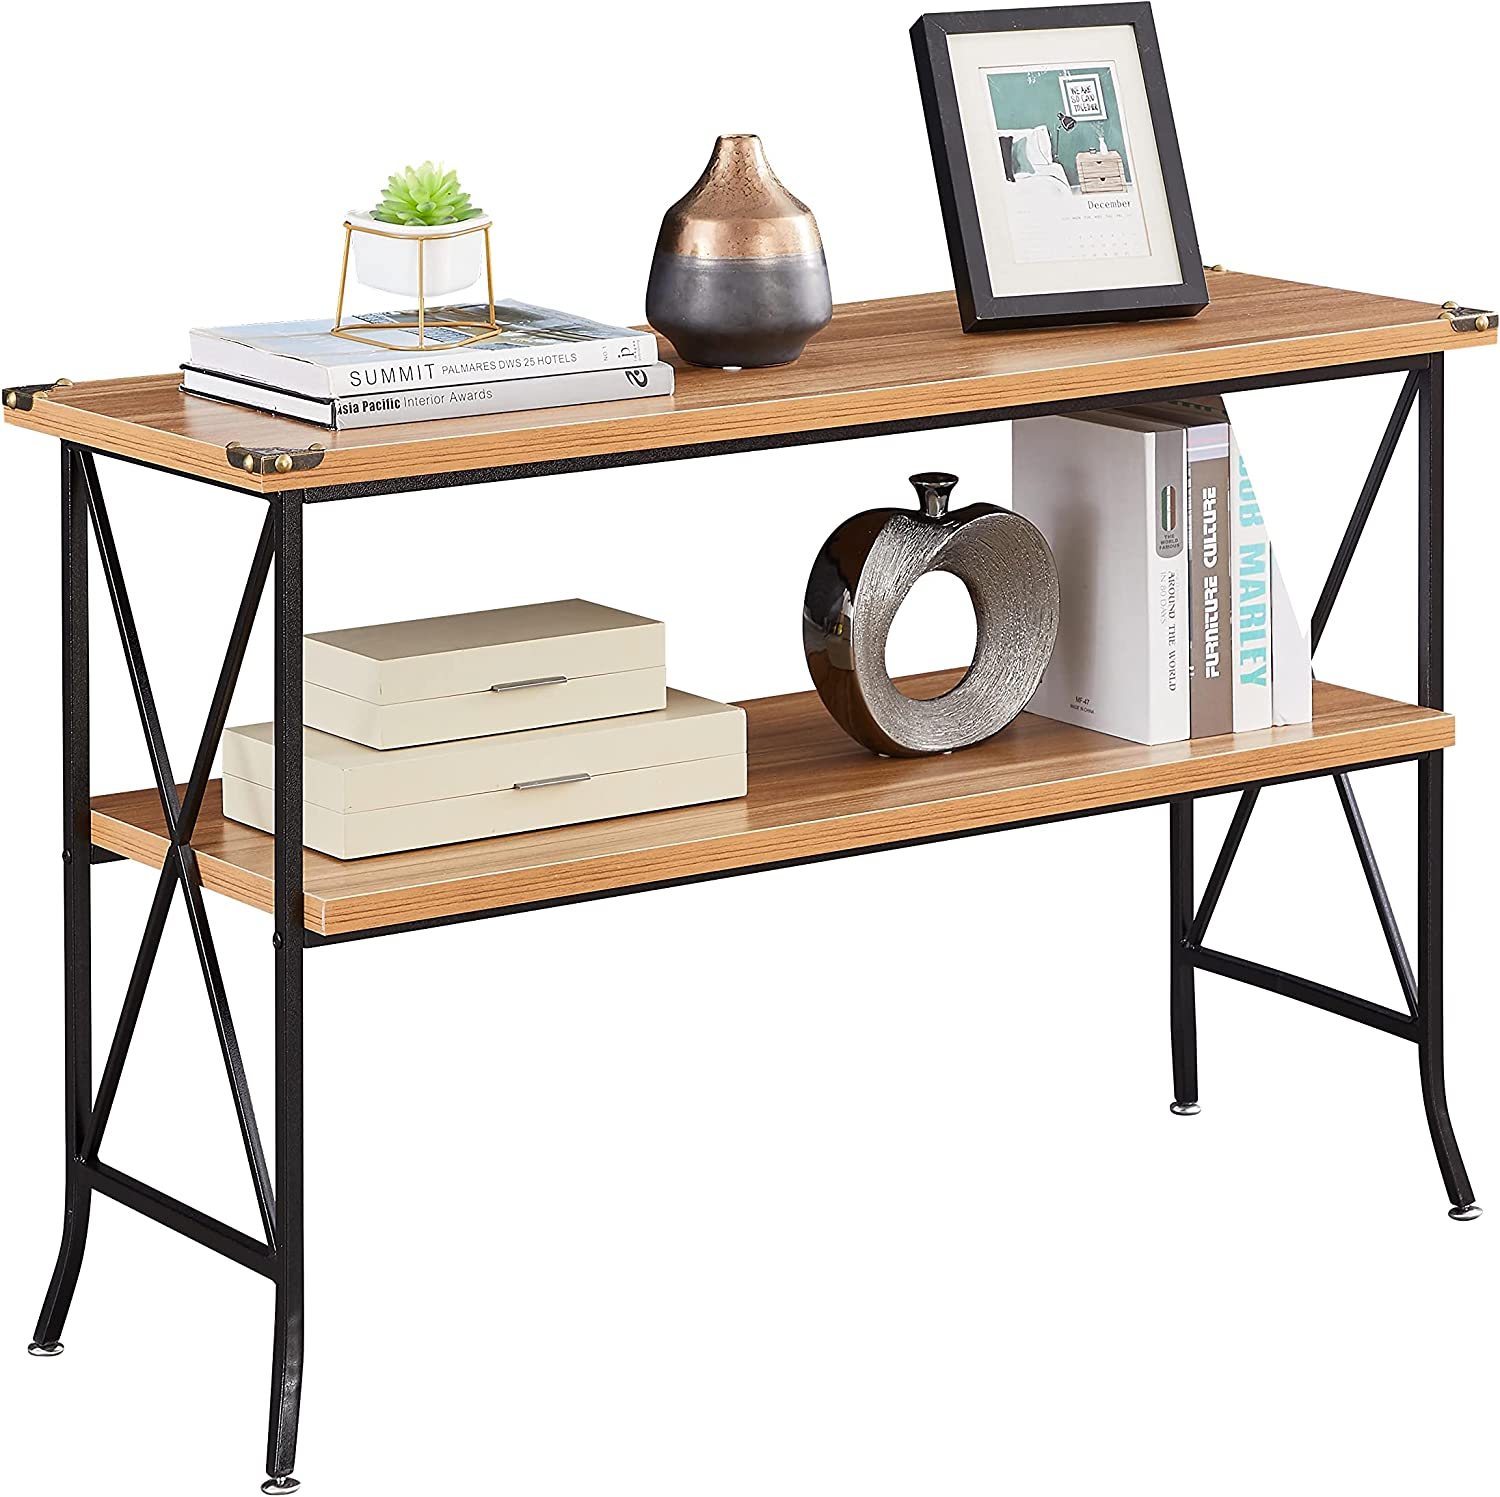 Industrial Sofa Console Table with Storage, 2-Tier High-Leg Wood and Metal Entry Tables with Open Shelves, Rustic Entryway/Hallway Table for Living Room (46 Inch, Walnut)